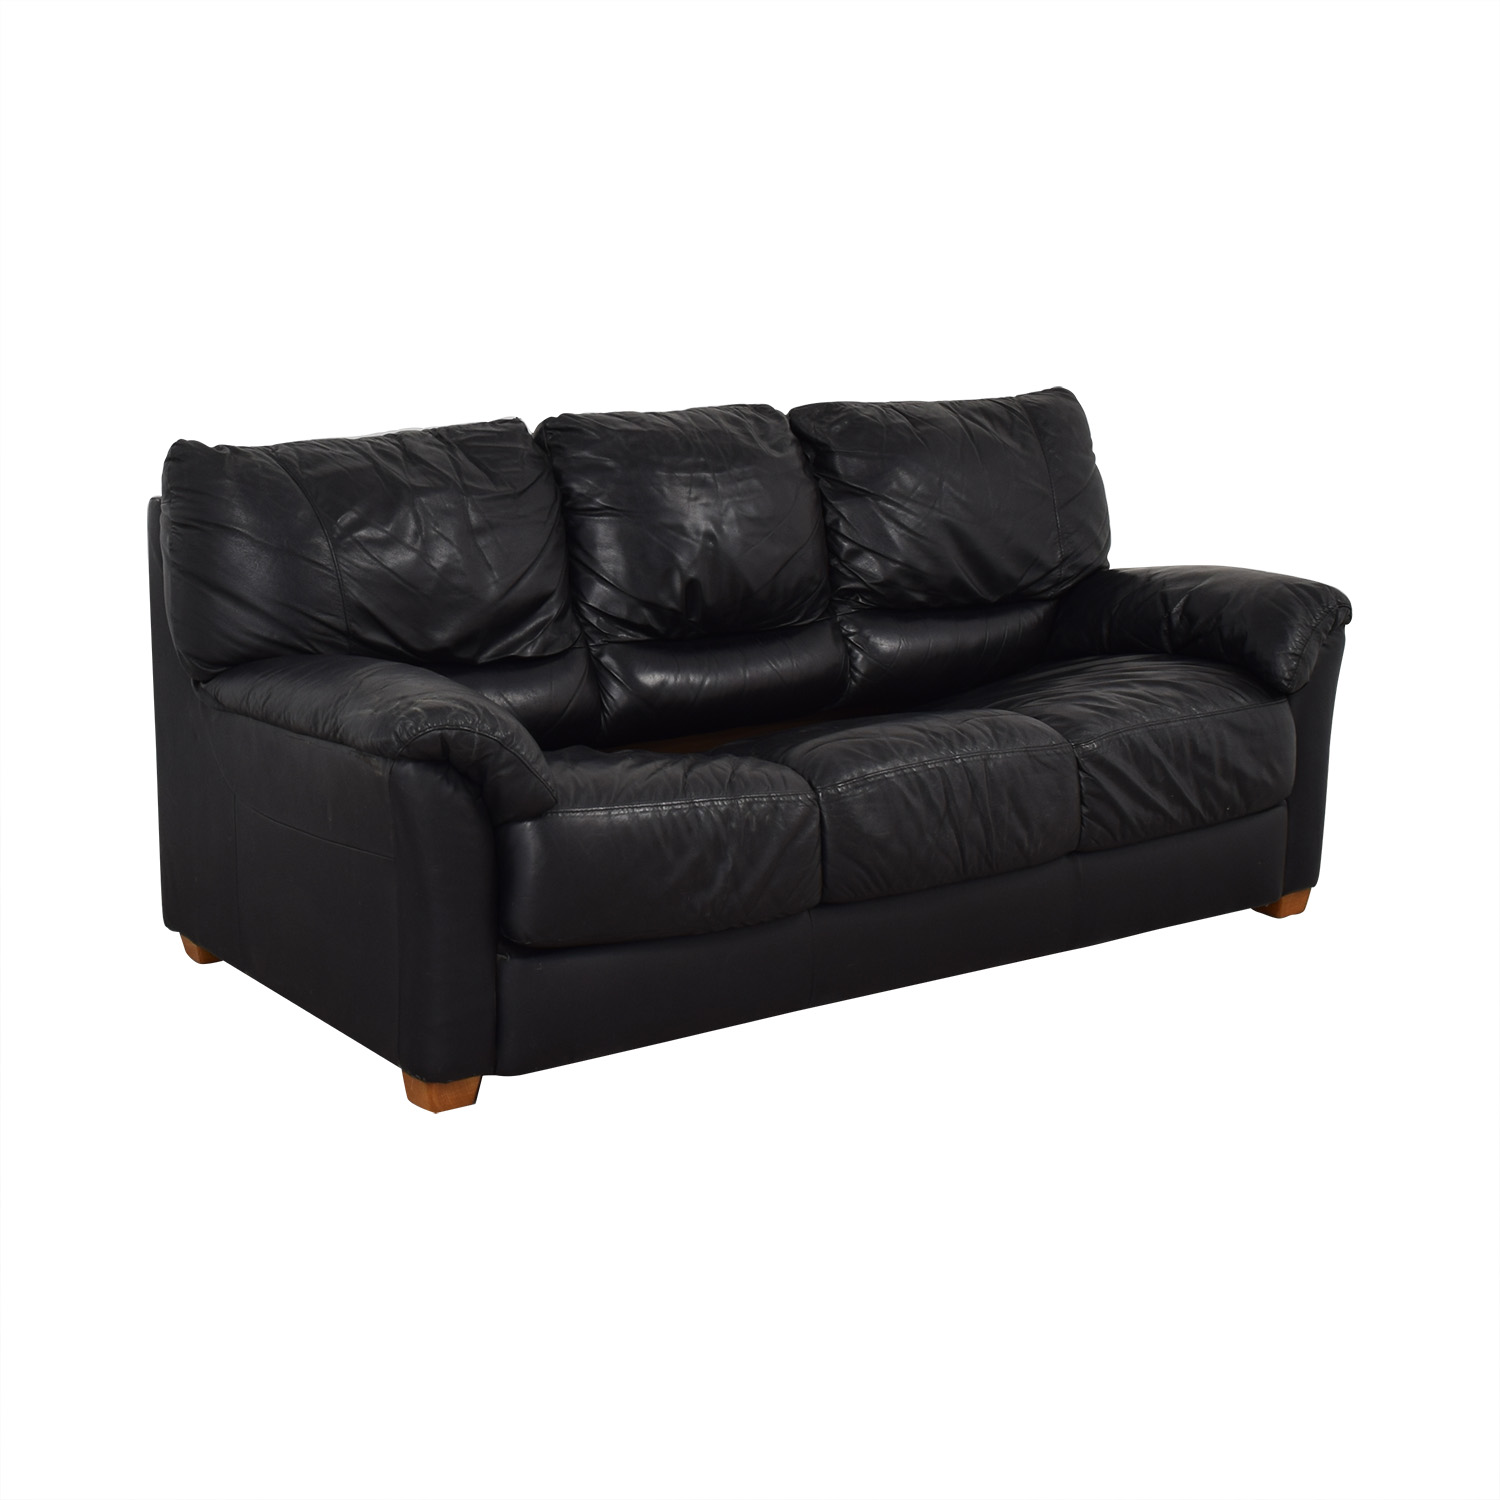 90% OFF - Black Three-Cushion Convertible Full Sleeper Sofa / Sofas